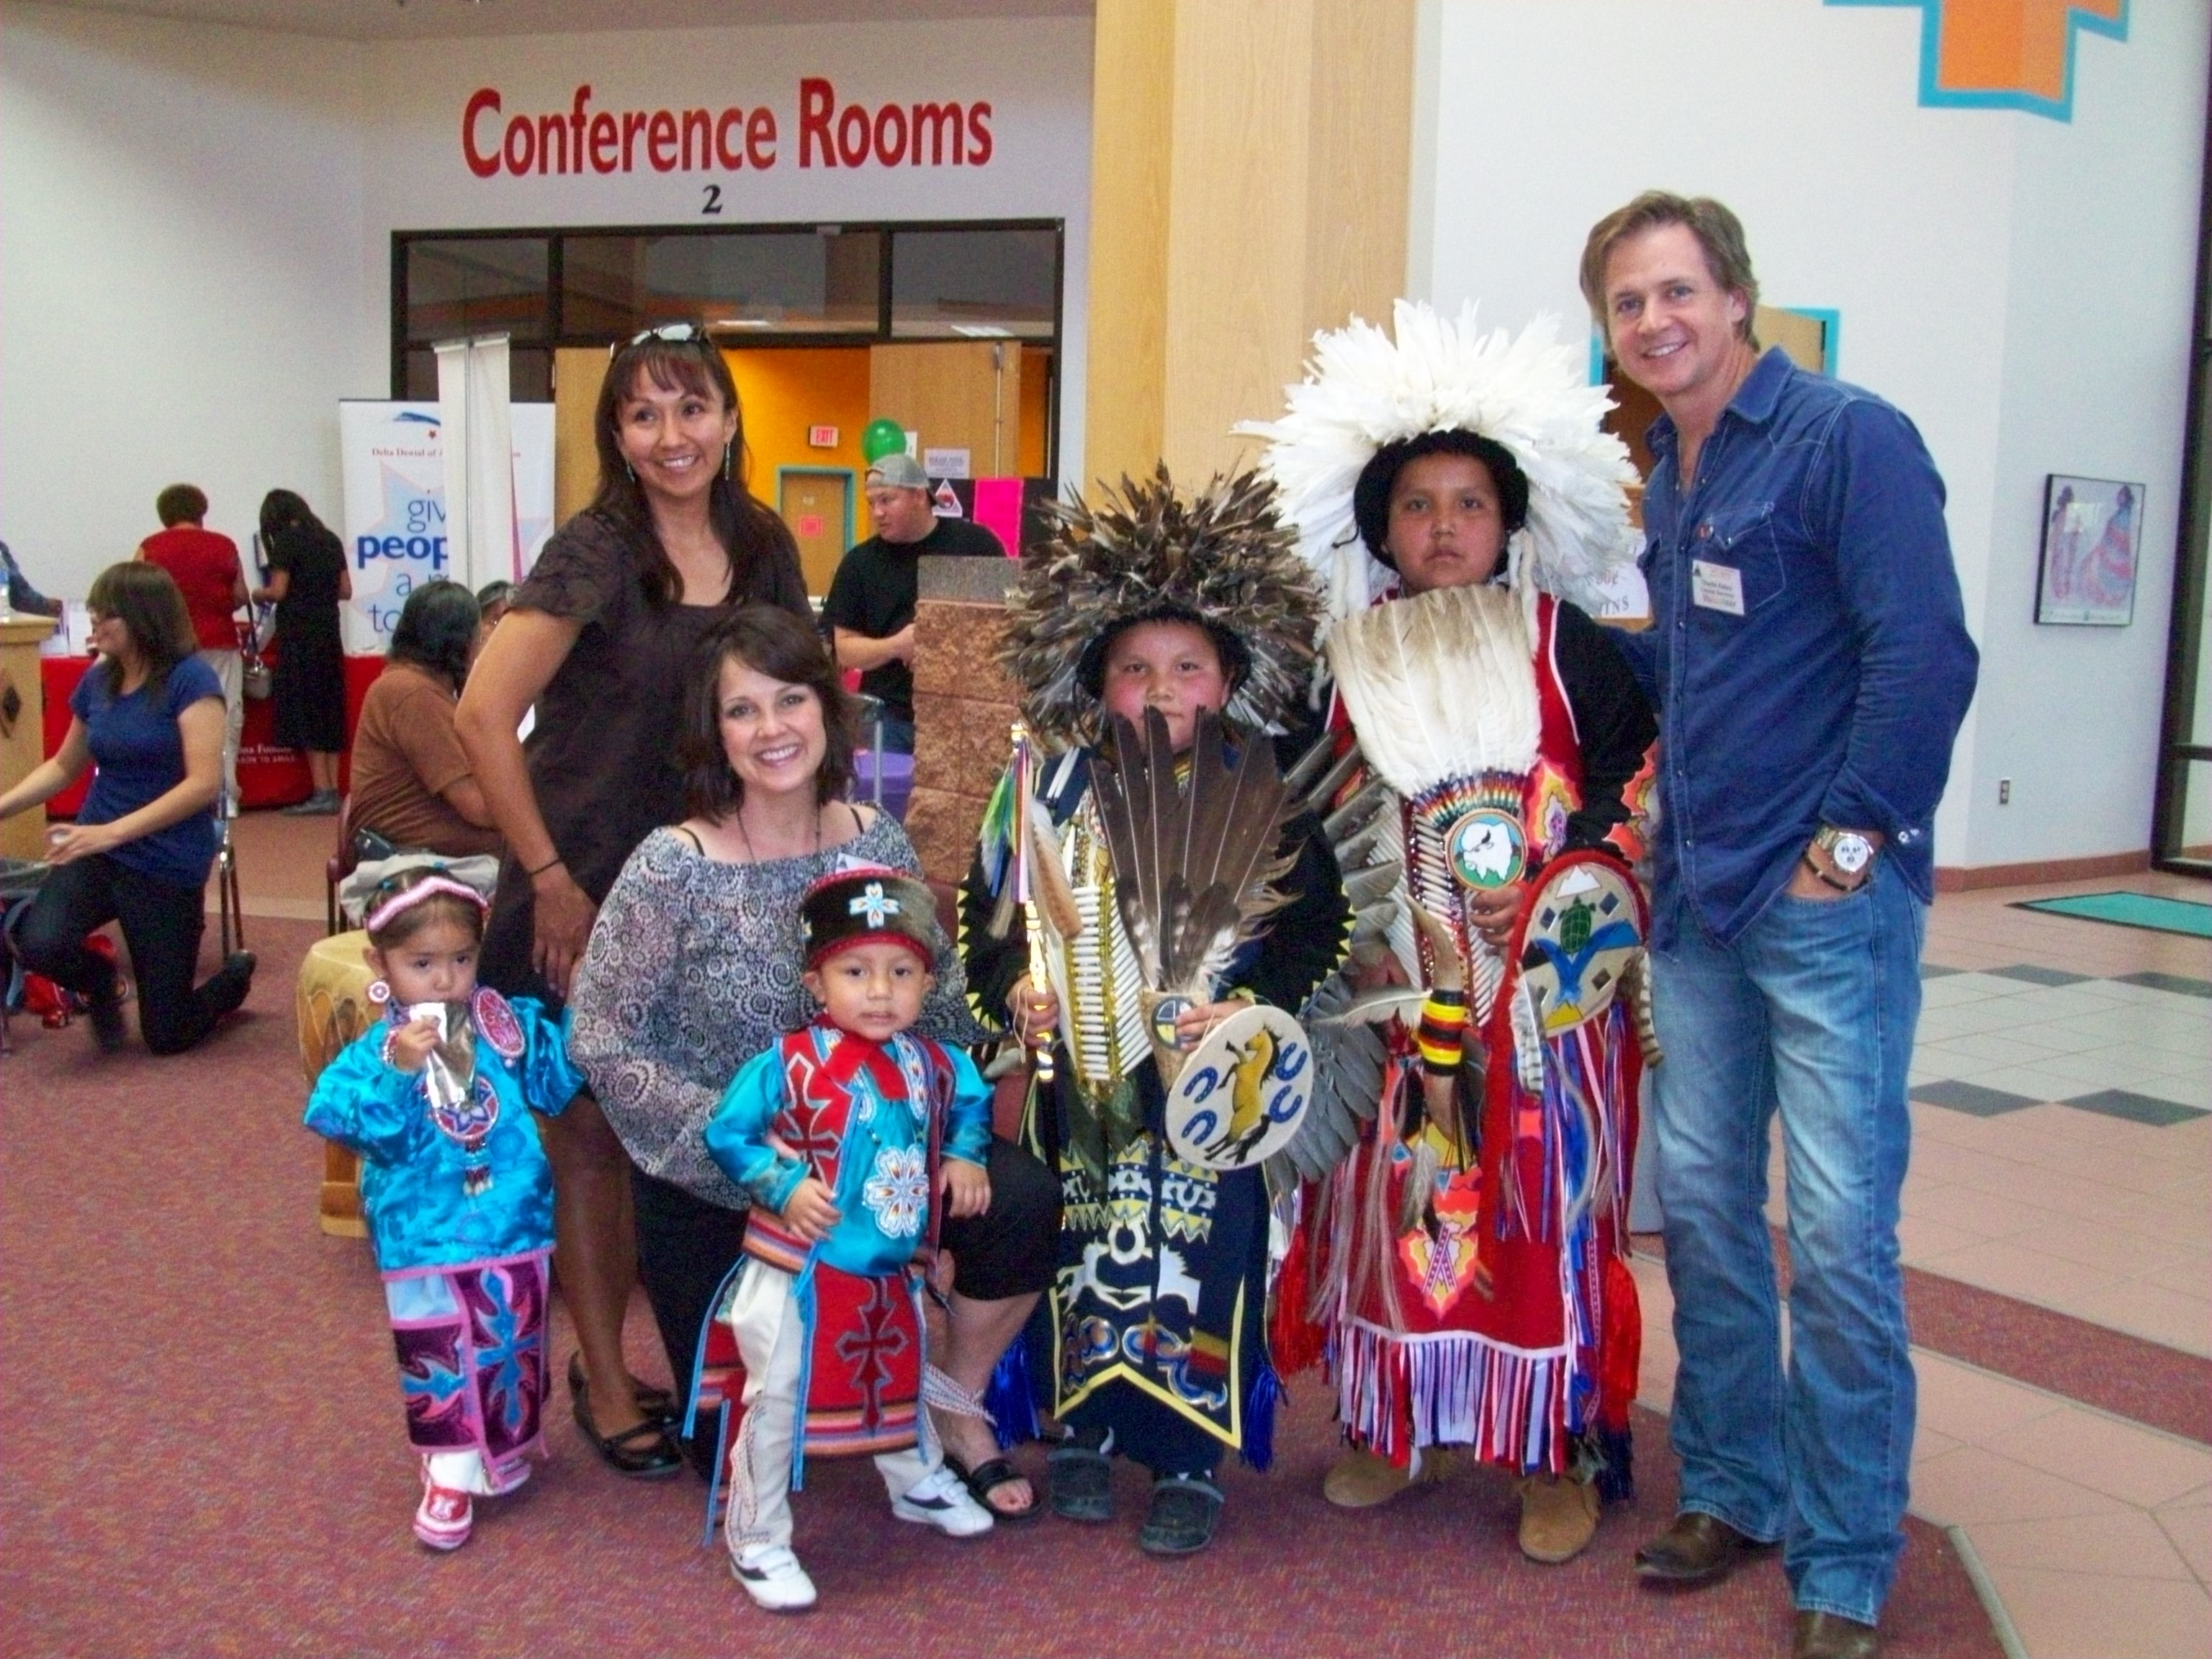 Navajo reservation cancer conference